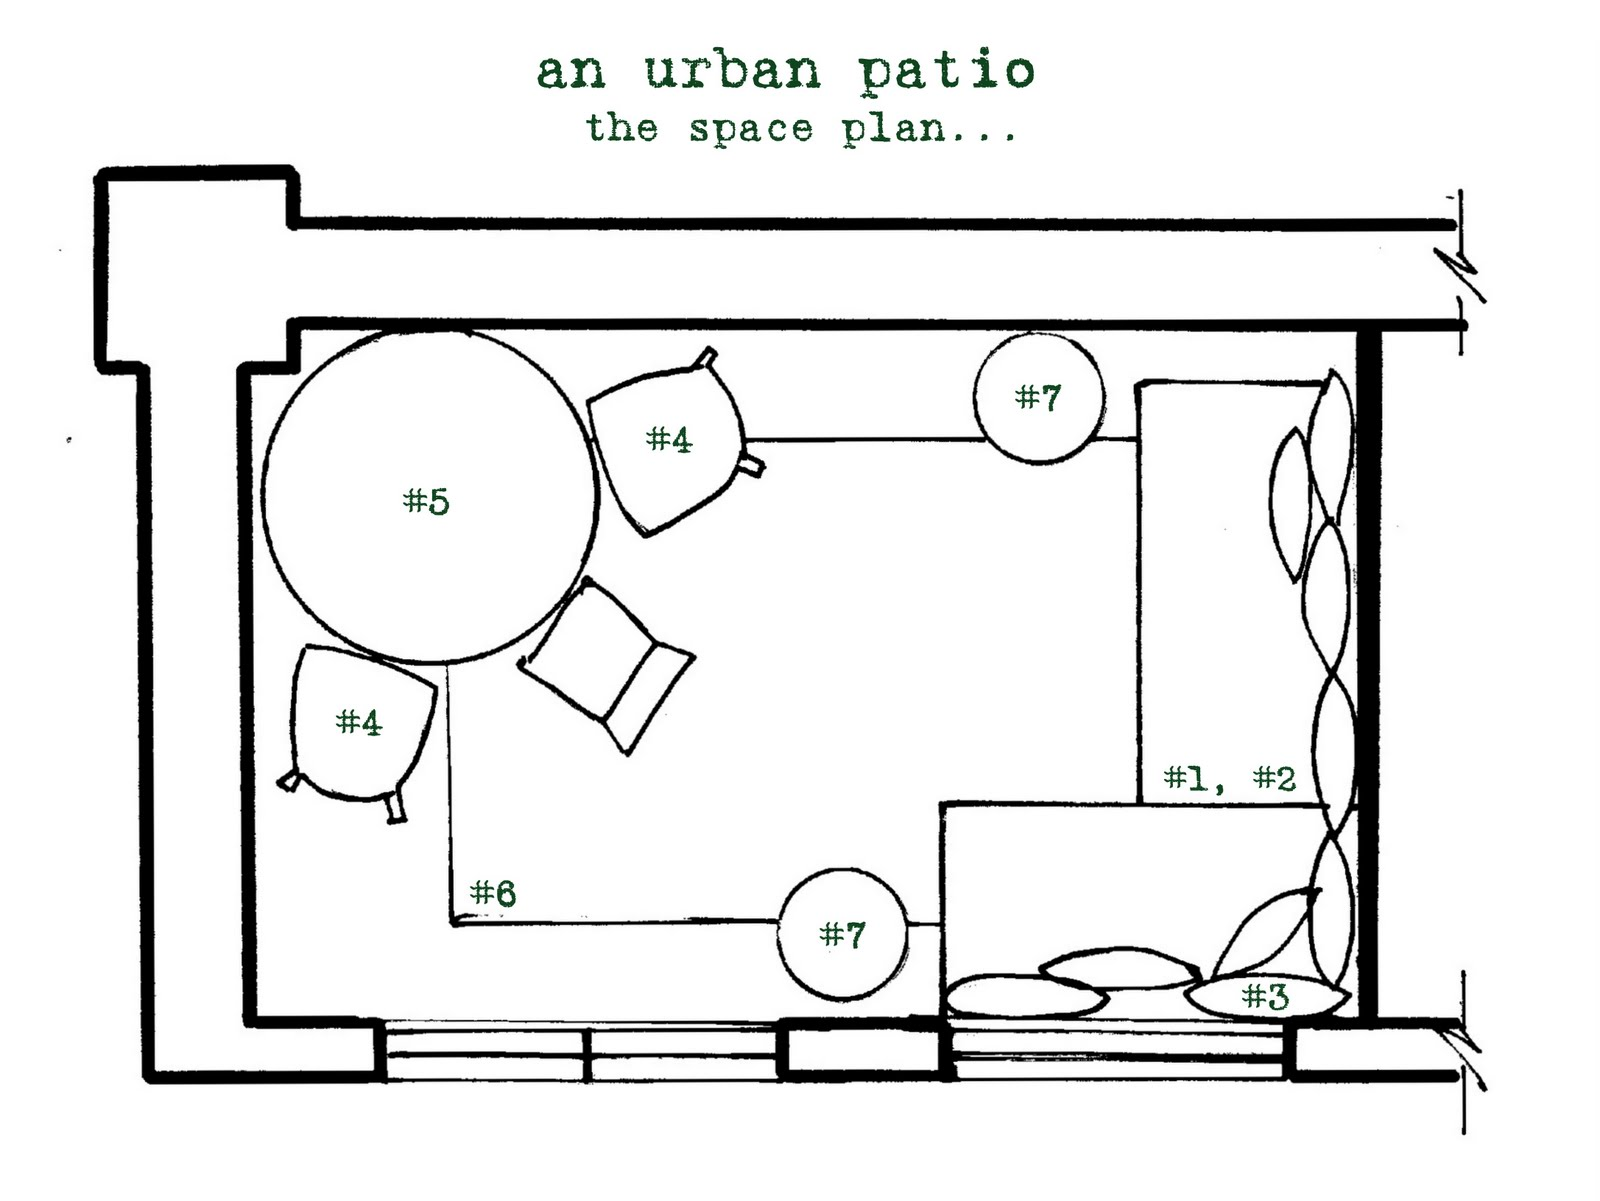 Genus Loci An Urban Patio Plan